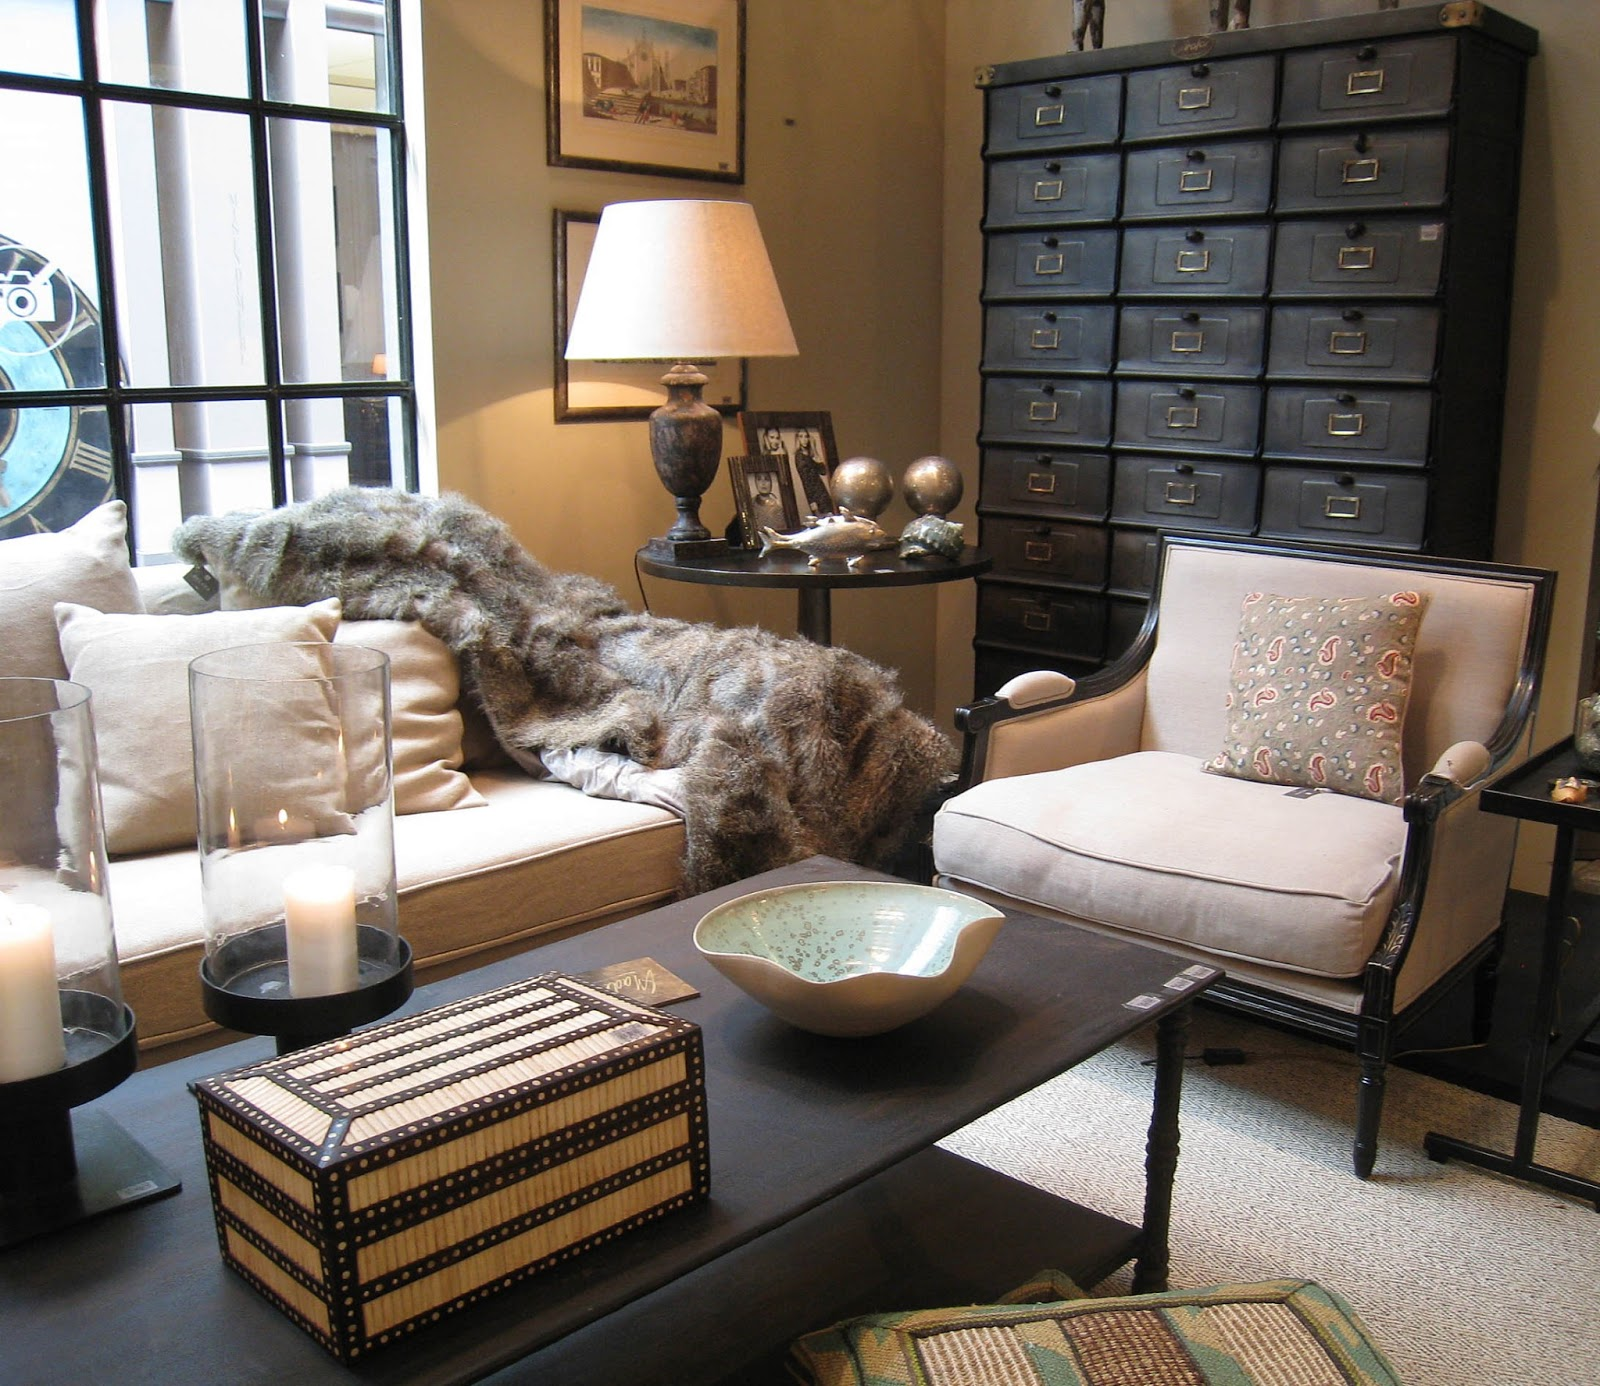 Parisian Style Bedroom Furniture Thm Remodeling Blog His Hers